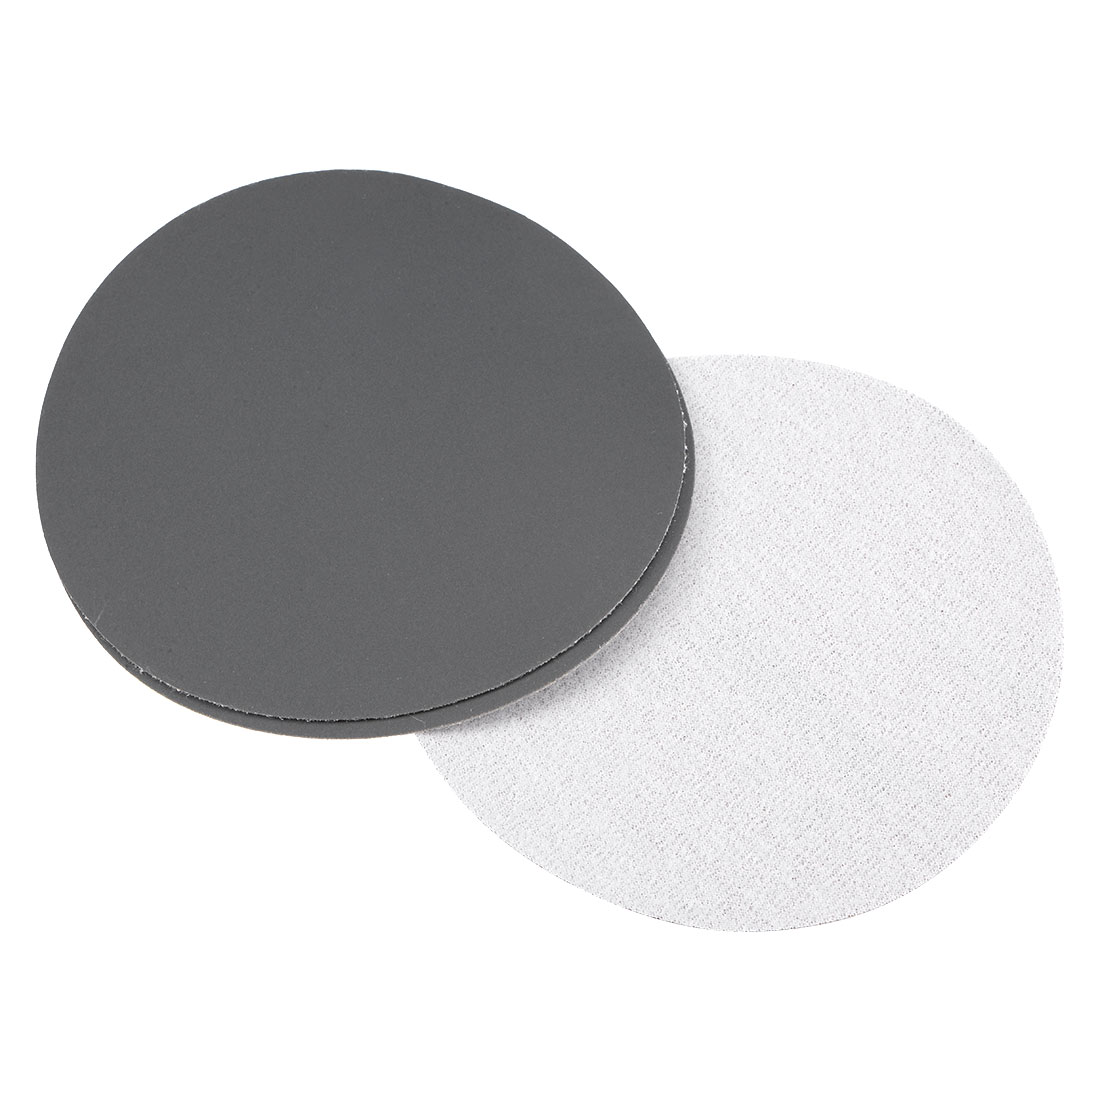 5 inch Wet Dry Discs 800 Grit Hook and Loop Sanding Disc Silicon Carbide 3pcs